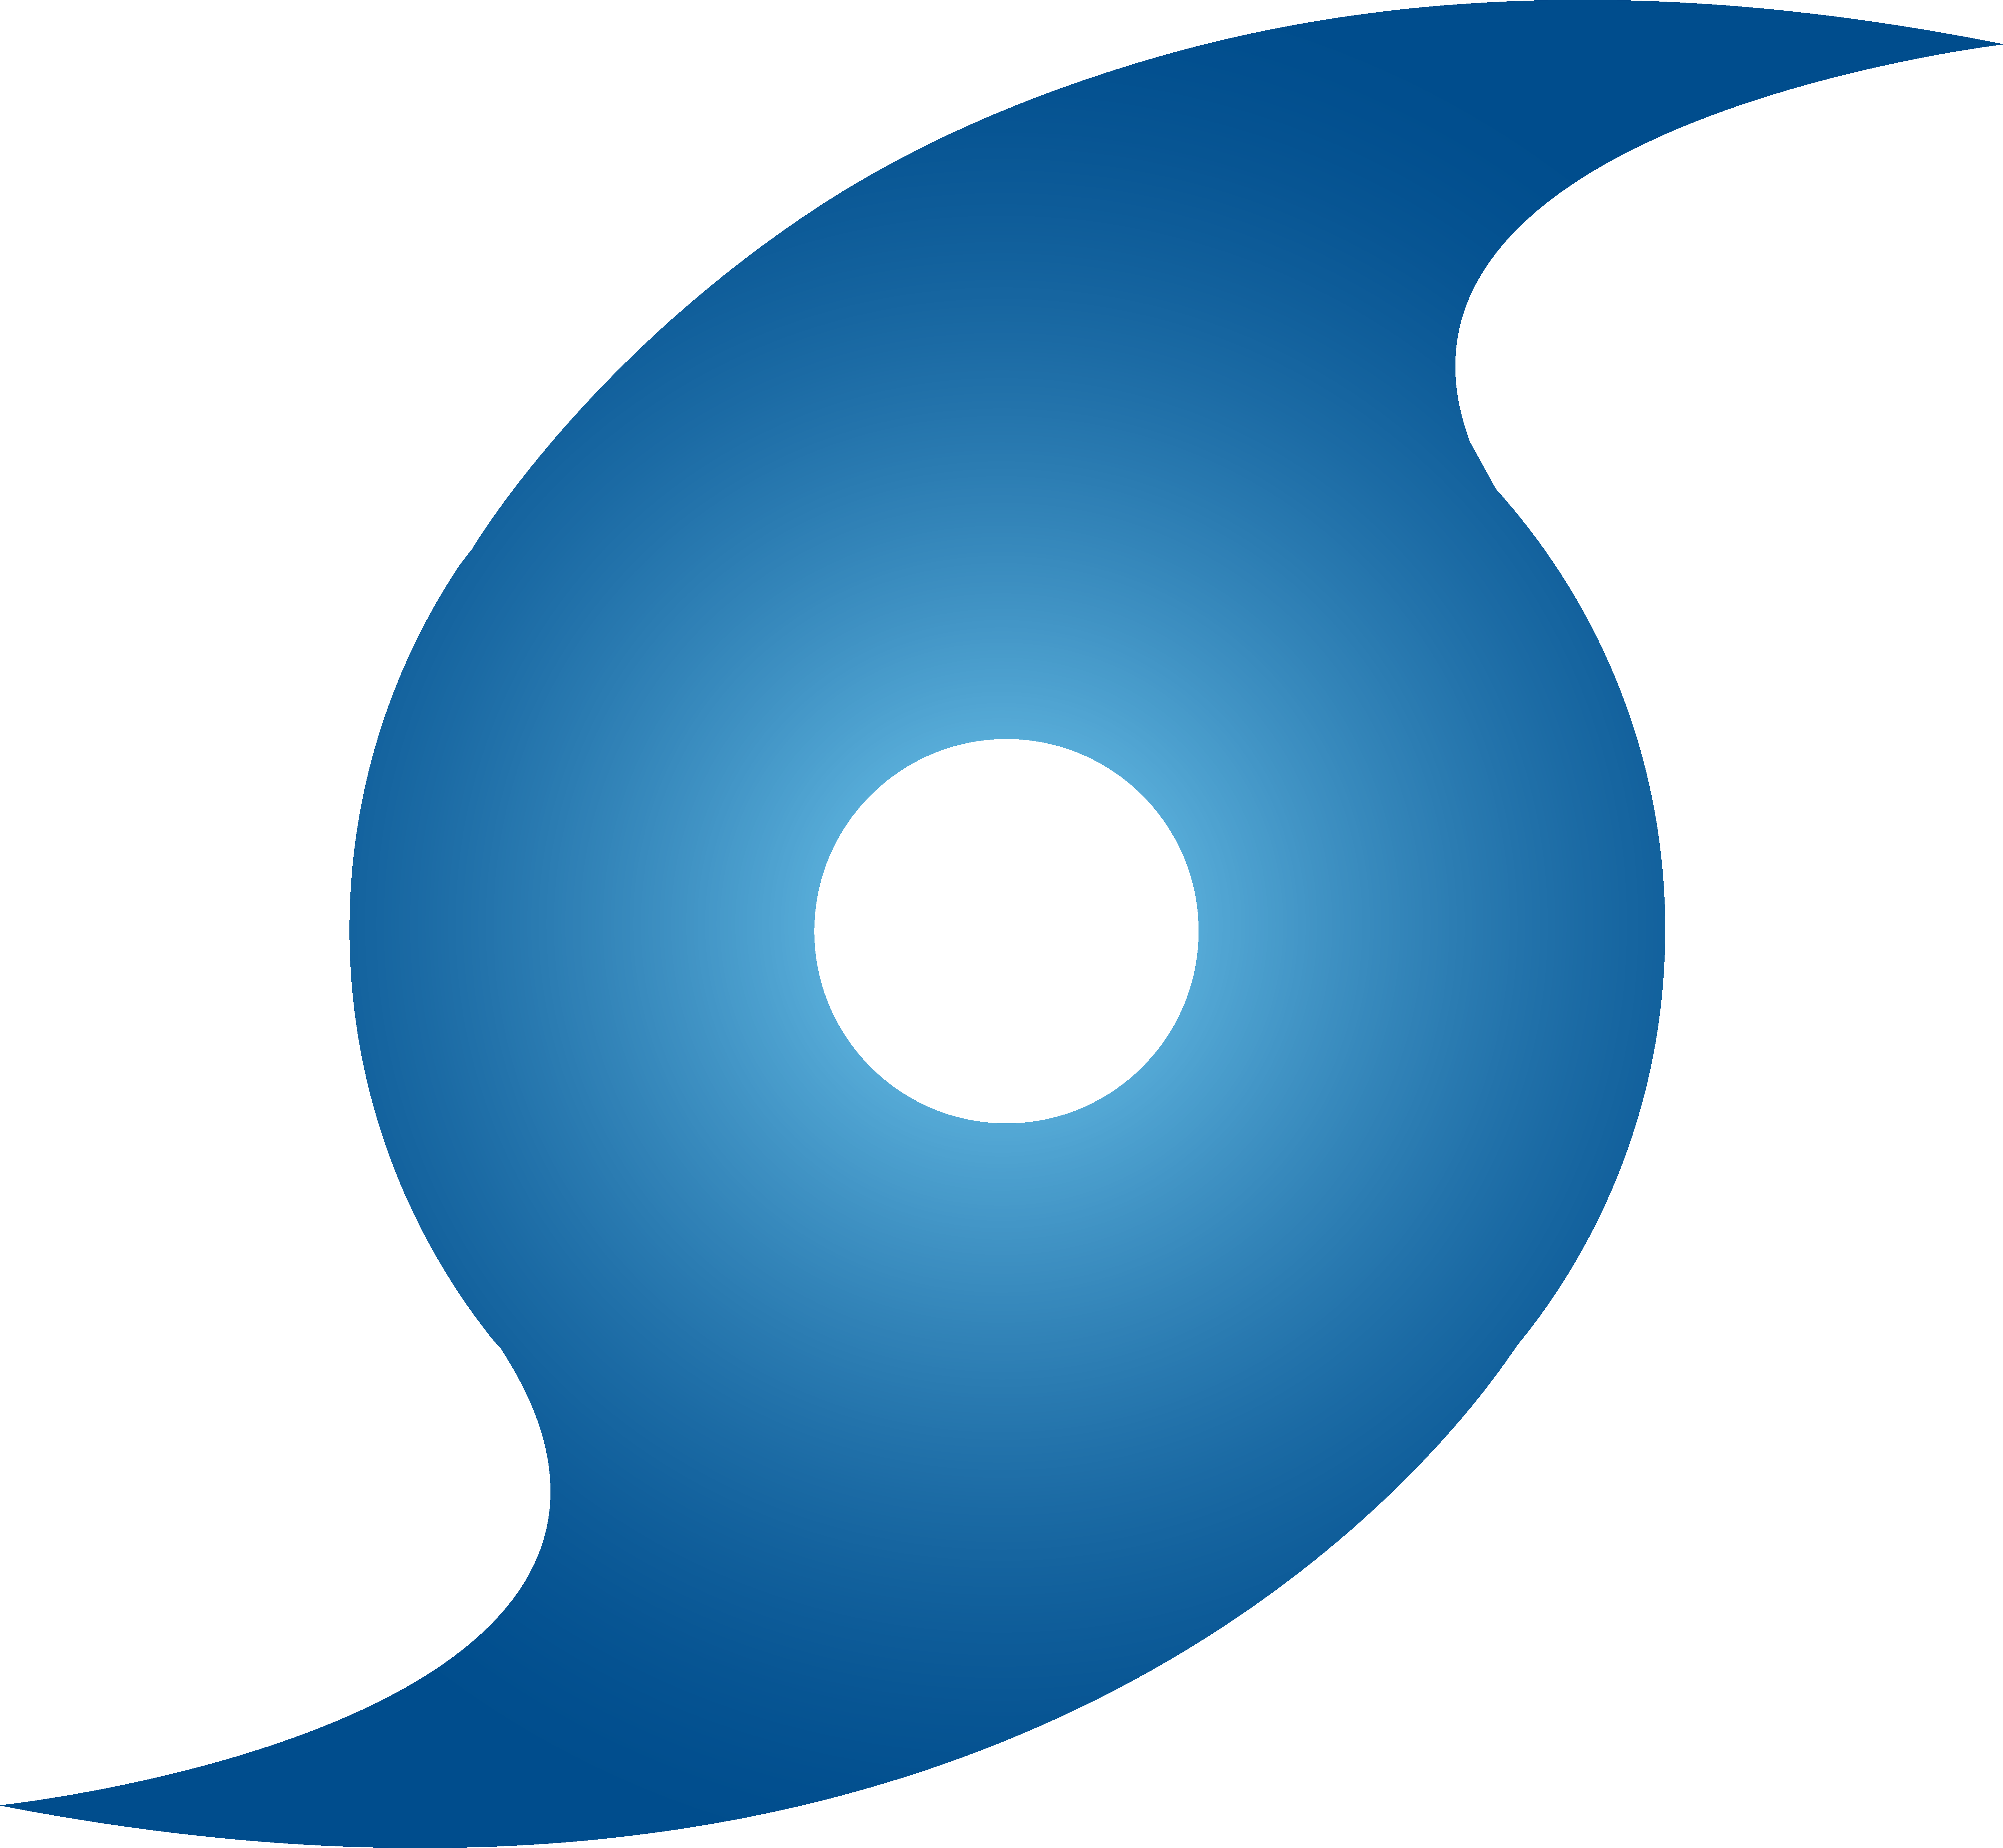 Blue Hurricane Weather Symbol image #42355